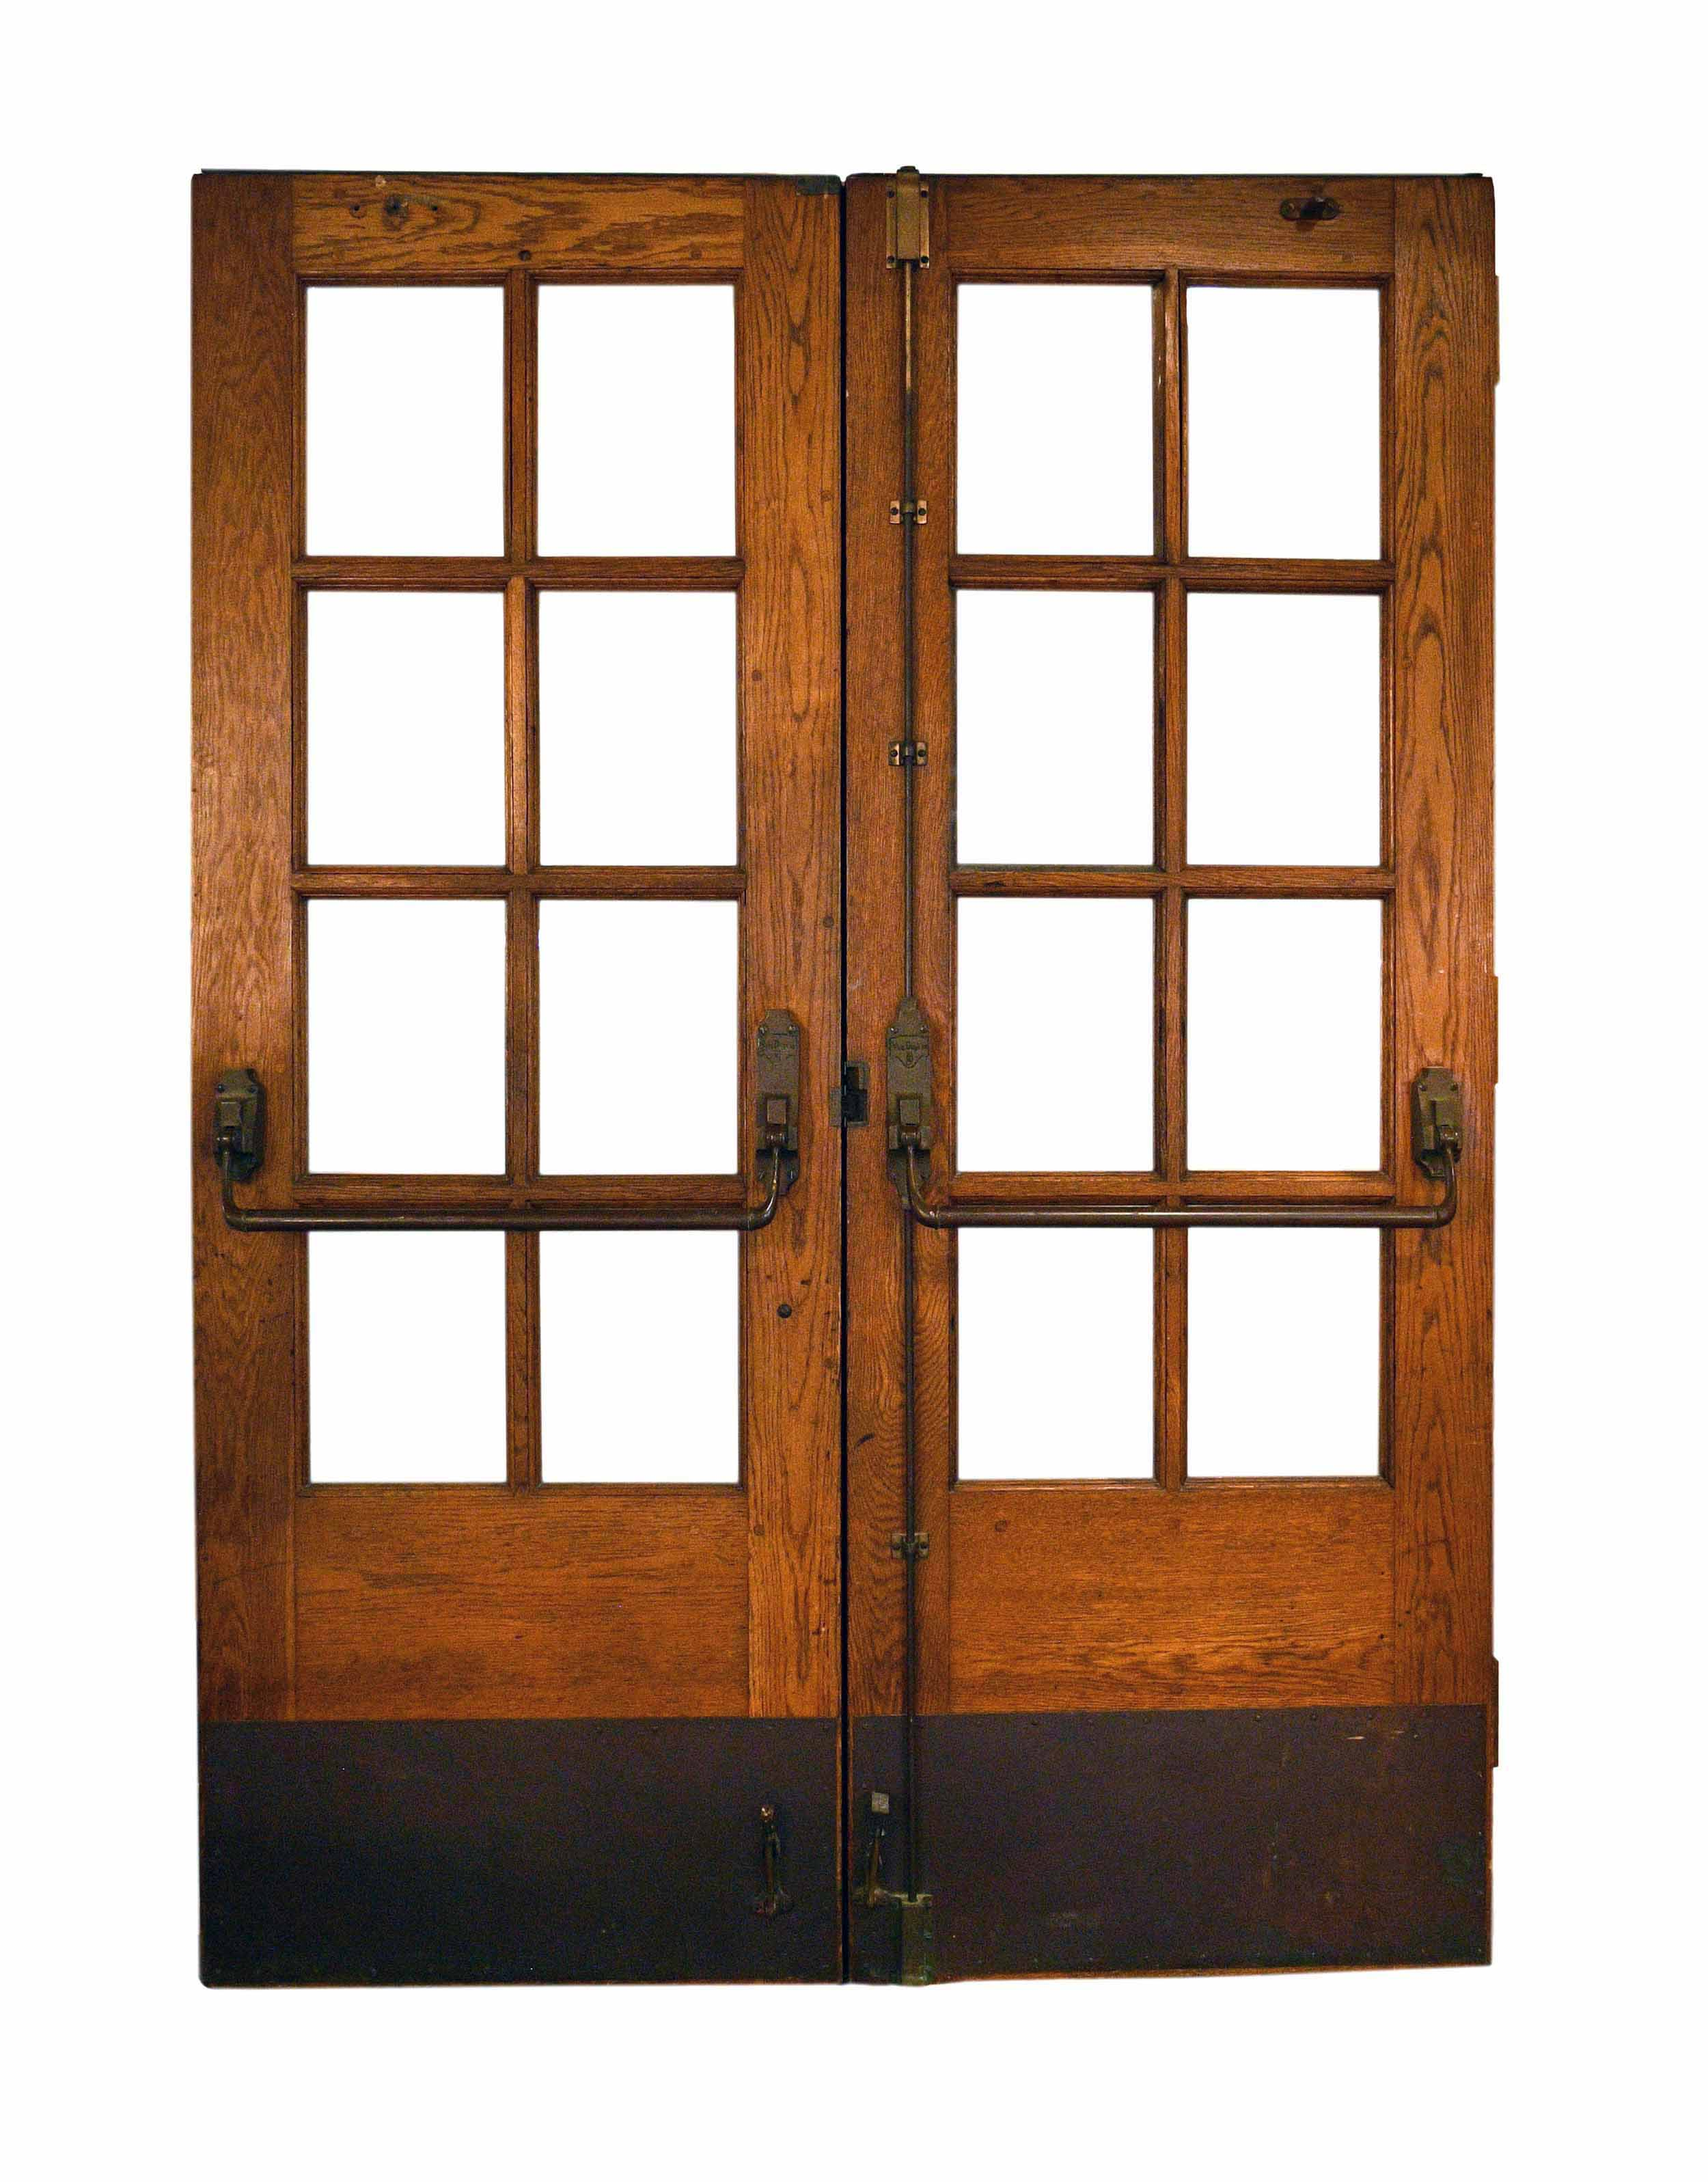 French double door unit with crash bar